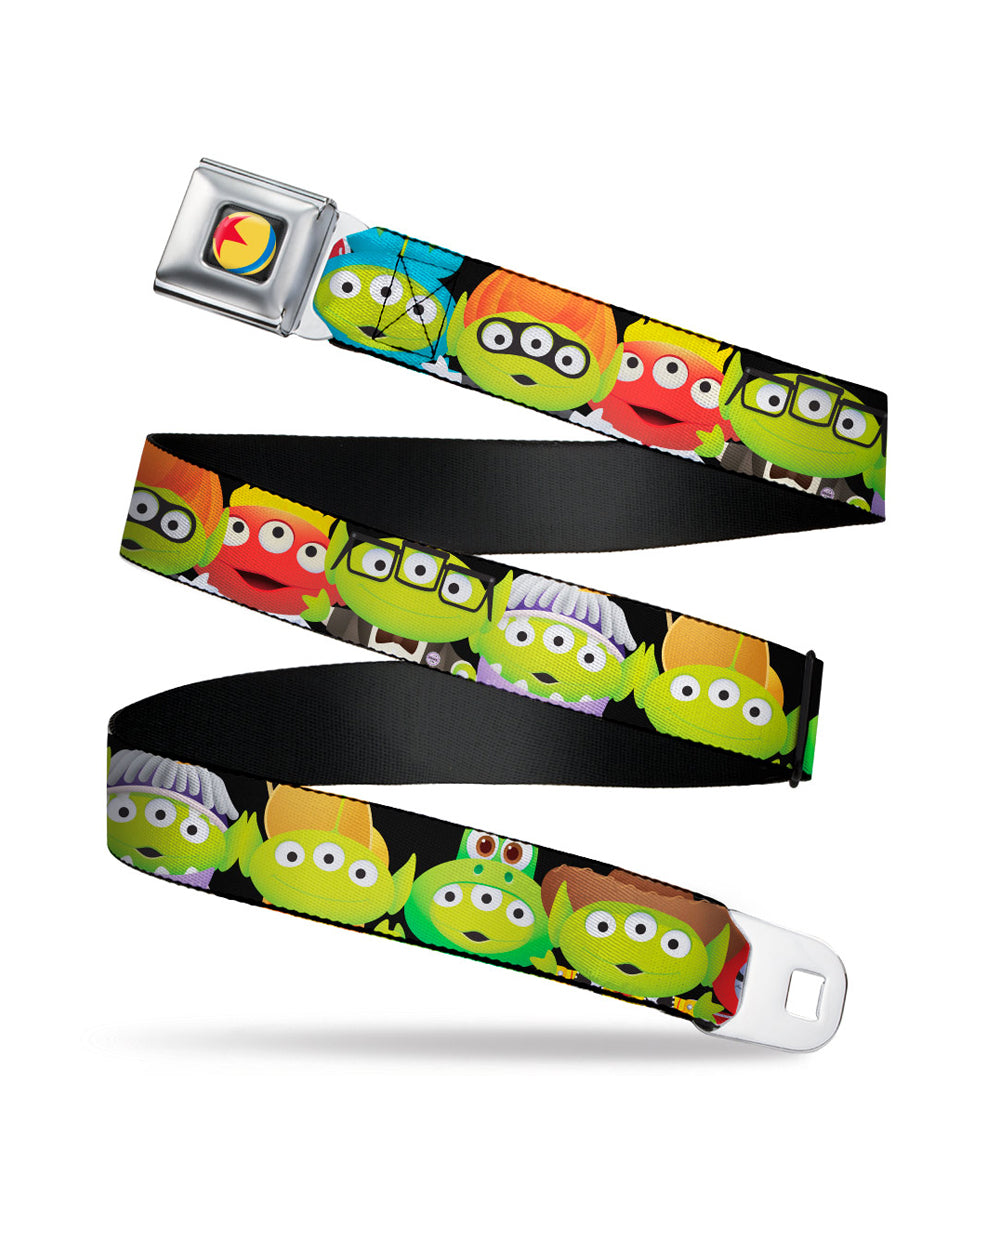 Disney Pixar Toy Story Alien Remix Belt - The Pink a la Mode - Buckle Down - The Pink a la Mode